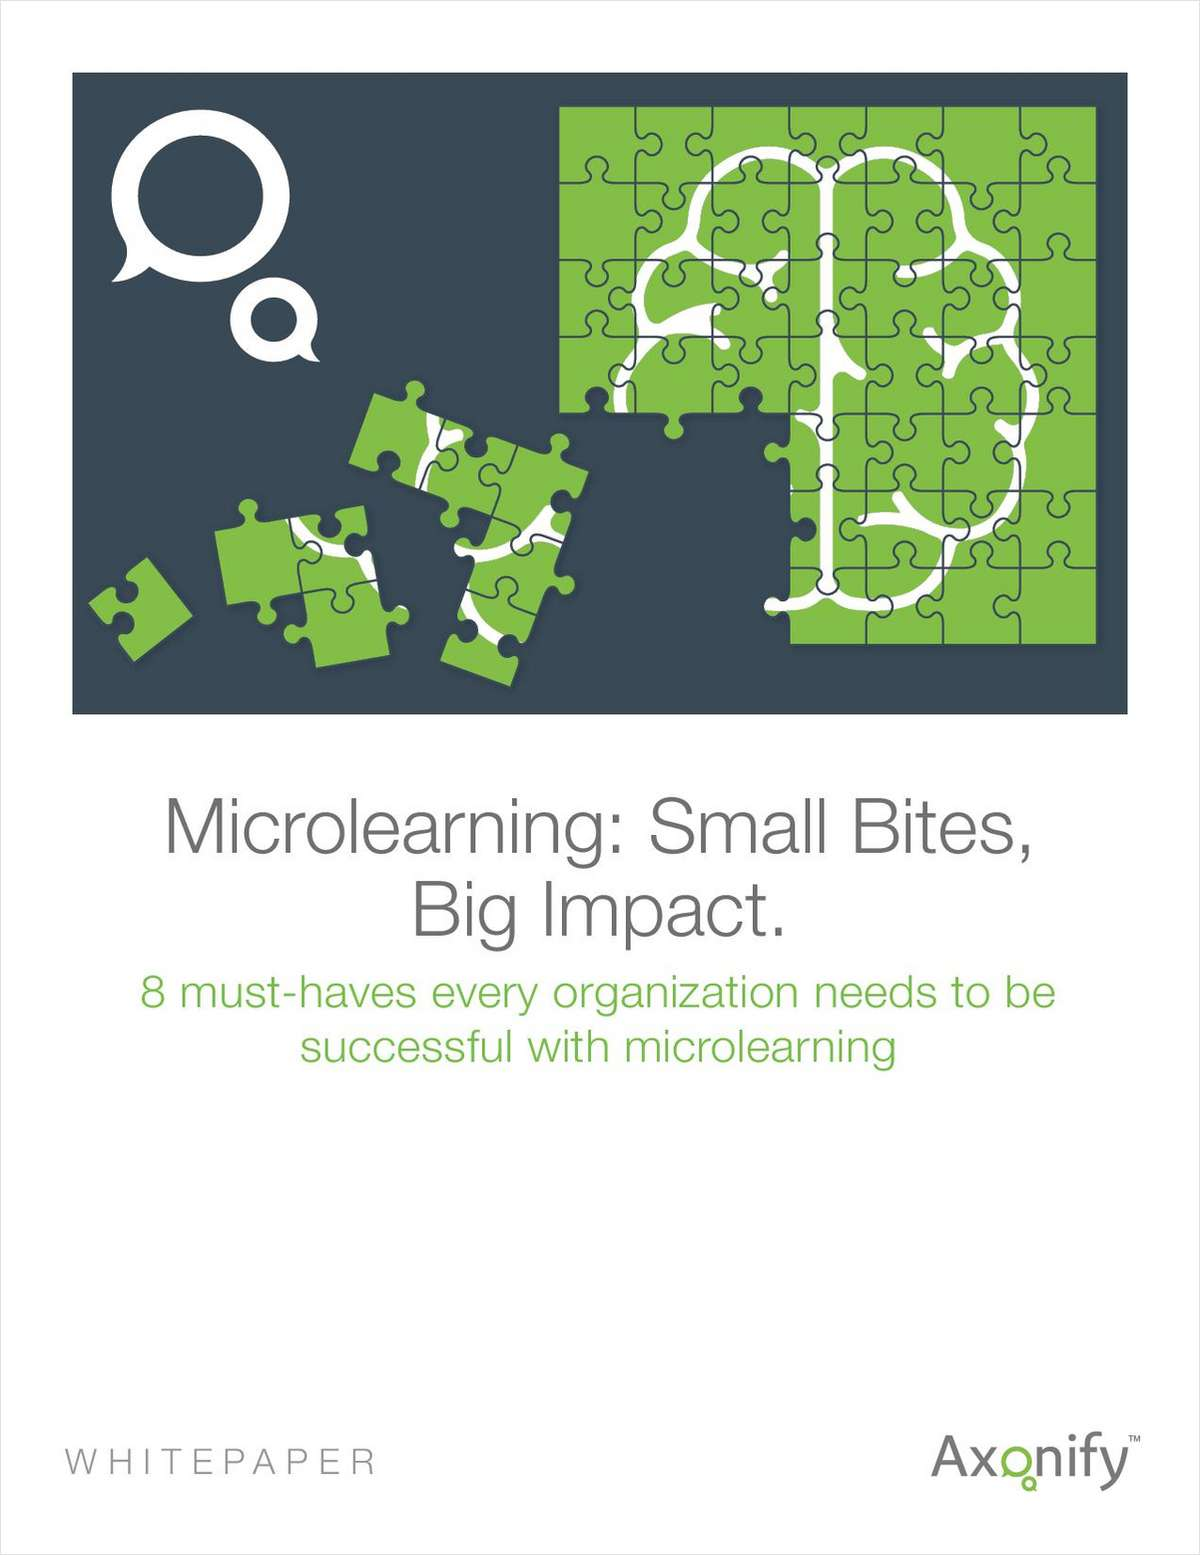 Microlearning: Small Bites, Big Impact